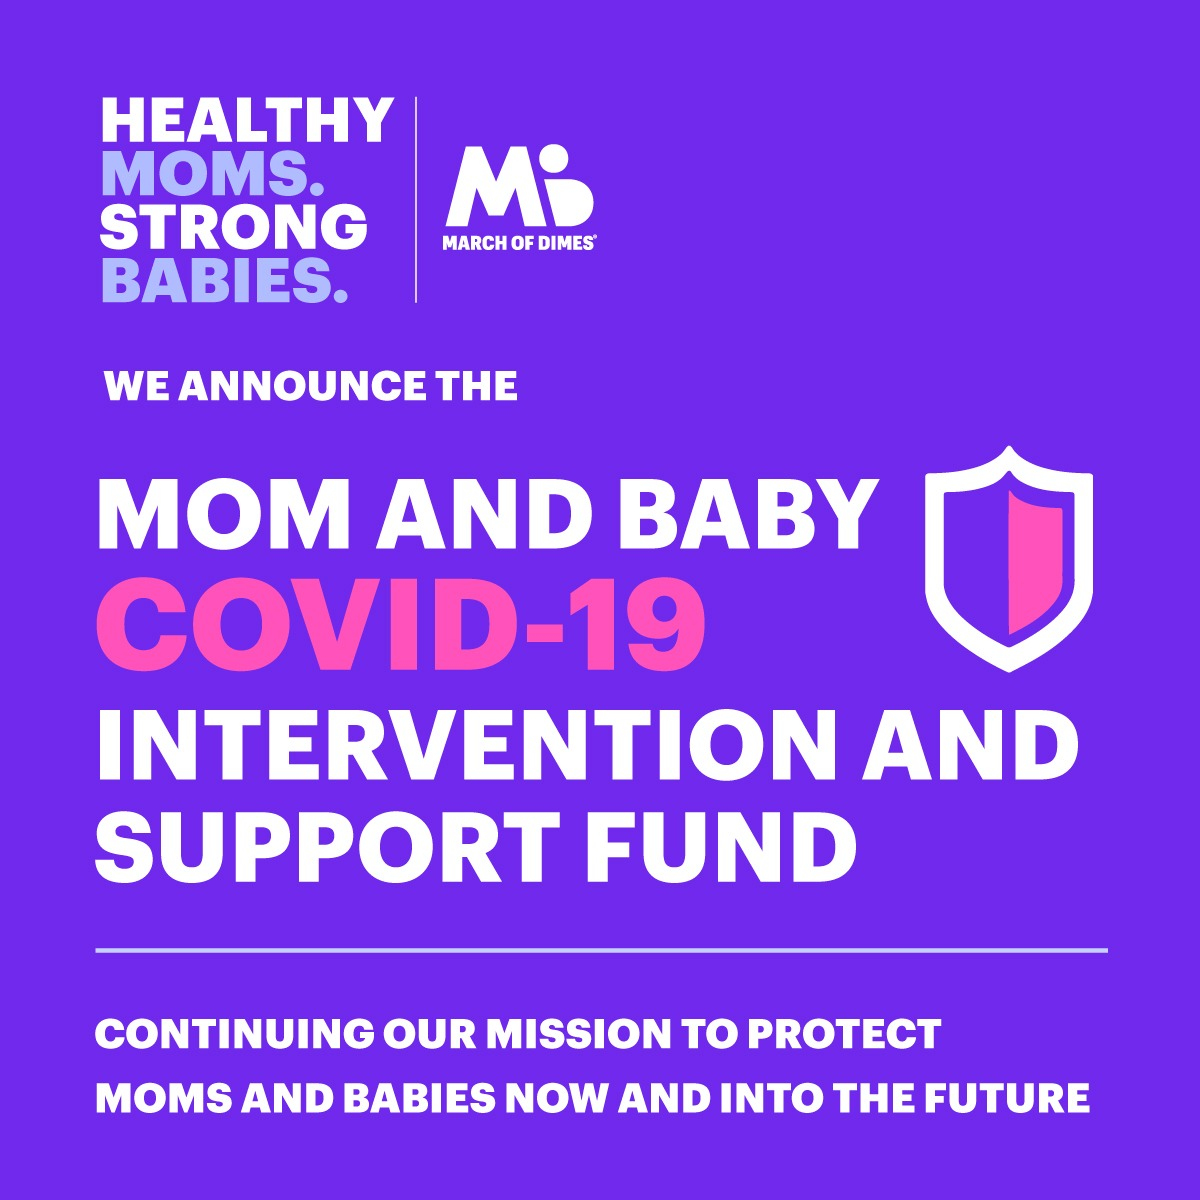 Mom and Baby COVID-19 Intervention and Support Fund